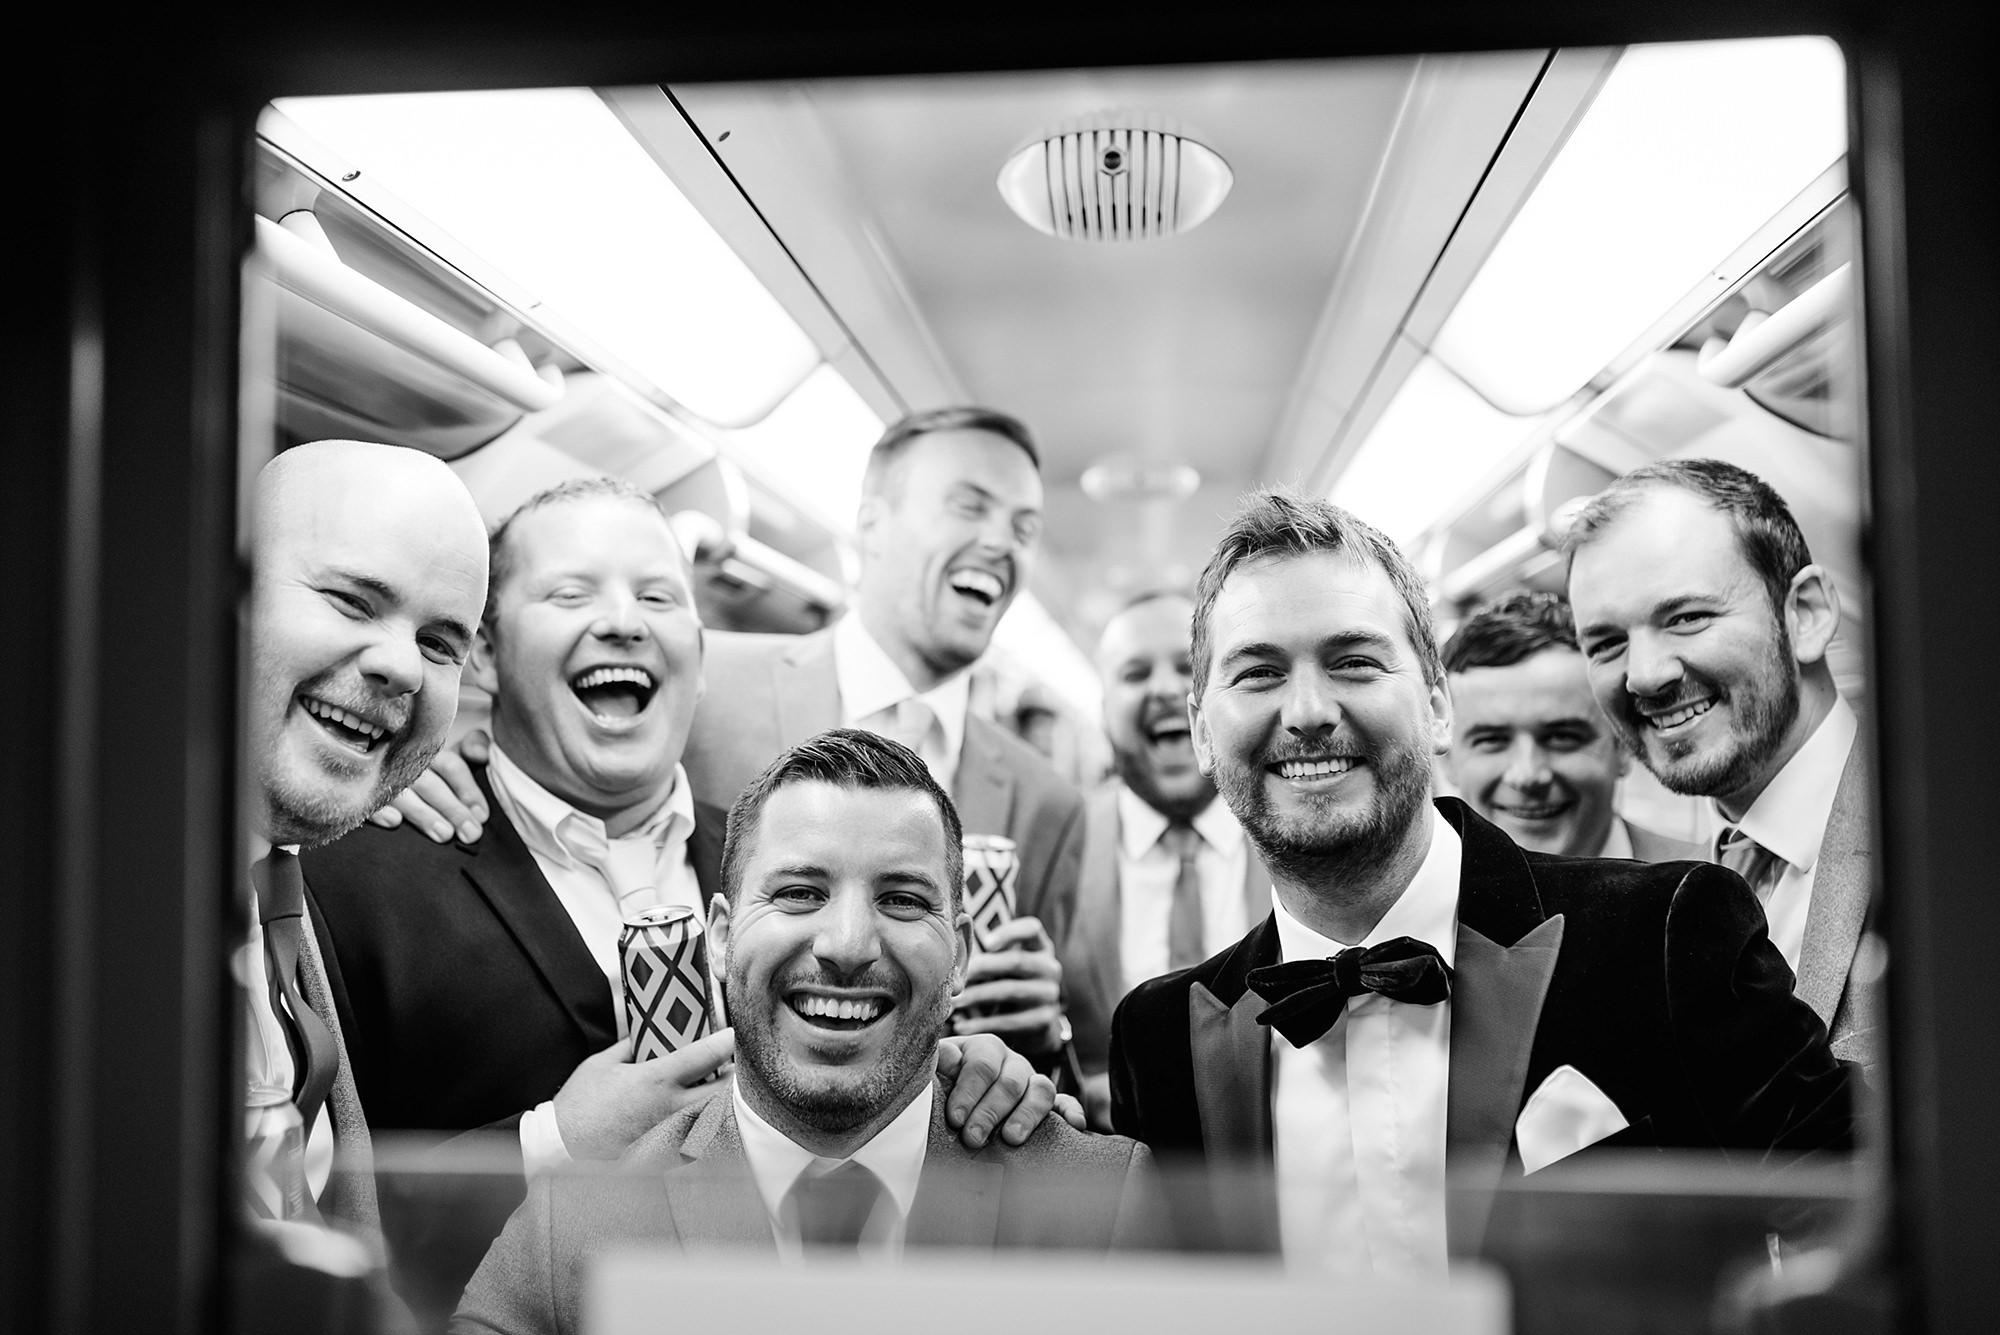 Fun London Wedding funny portrait of from and groomsmen through tube window